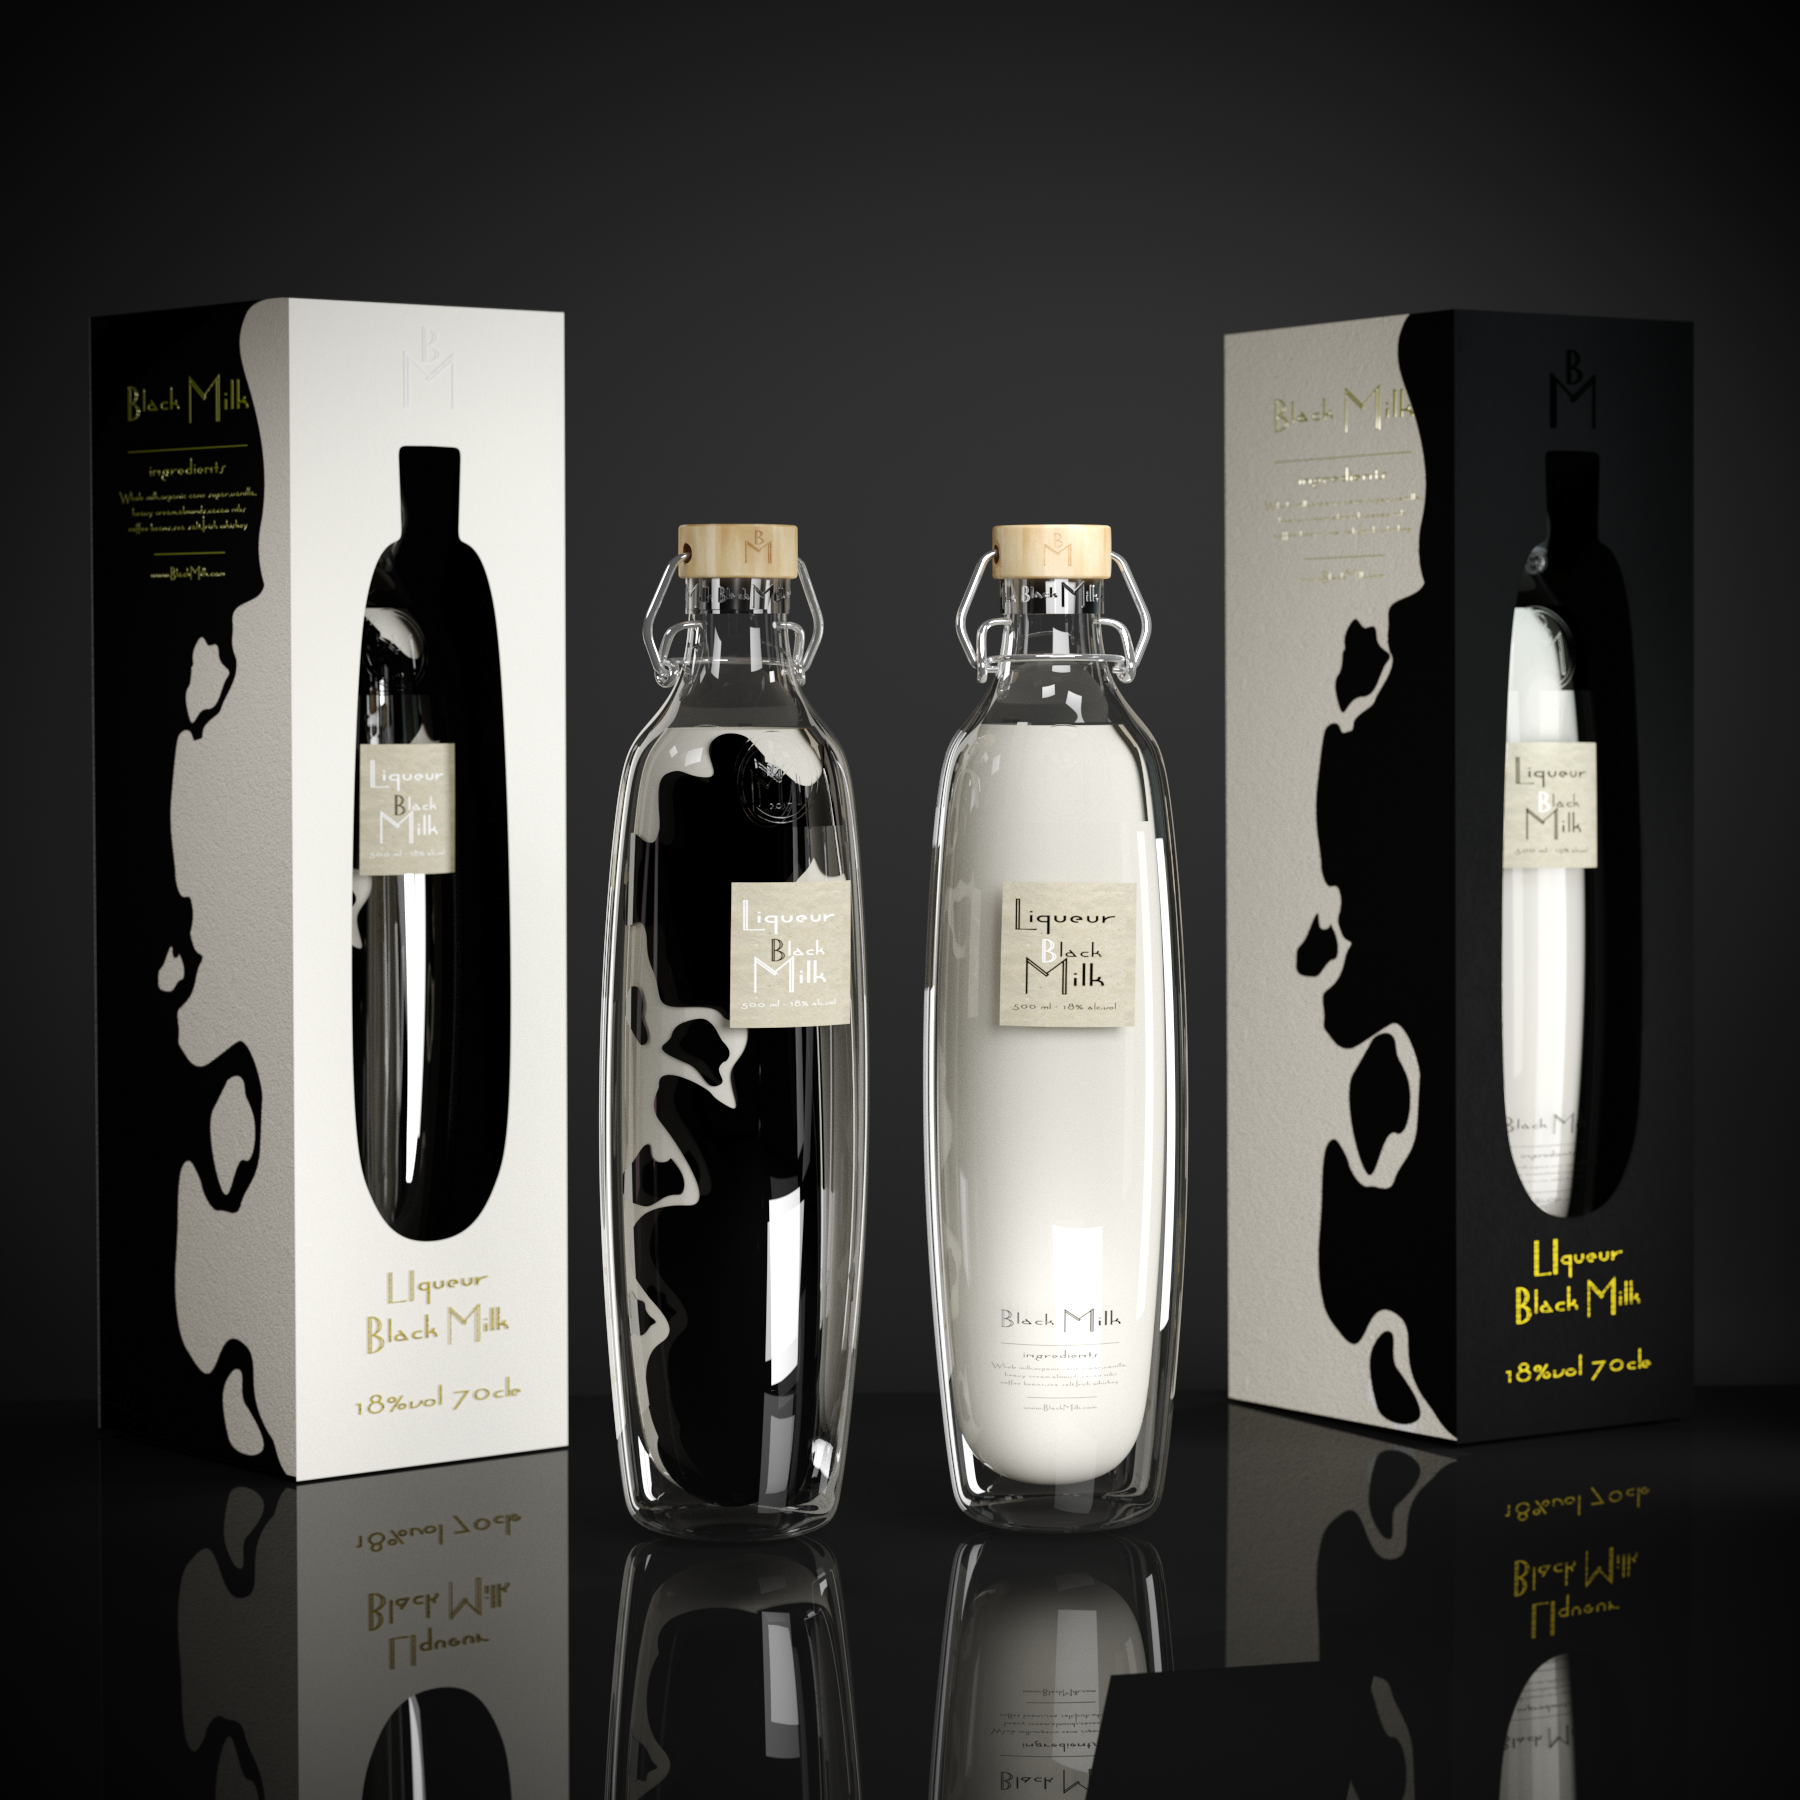 Self Published New Brand and Packaging Design for Russia Black Milk Liqueur